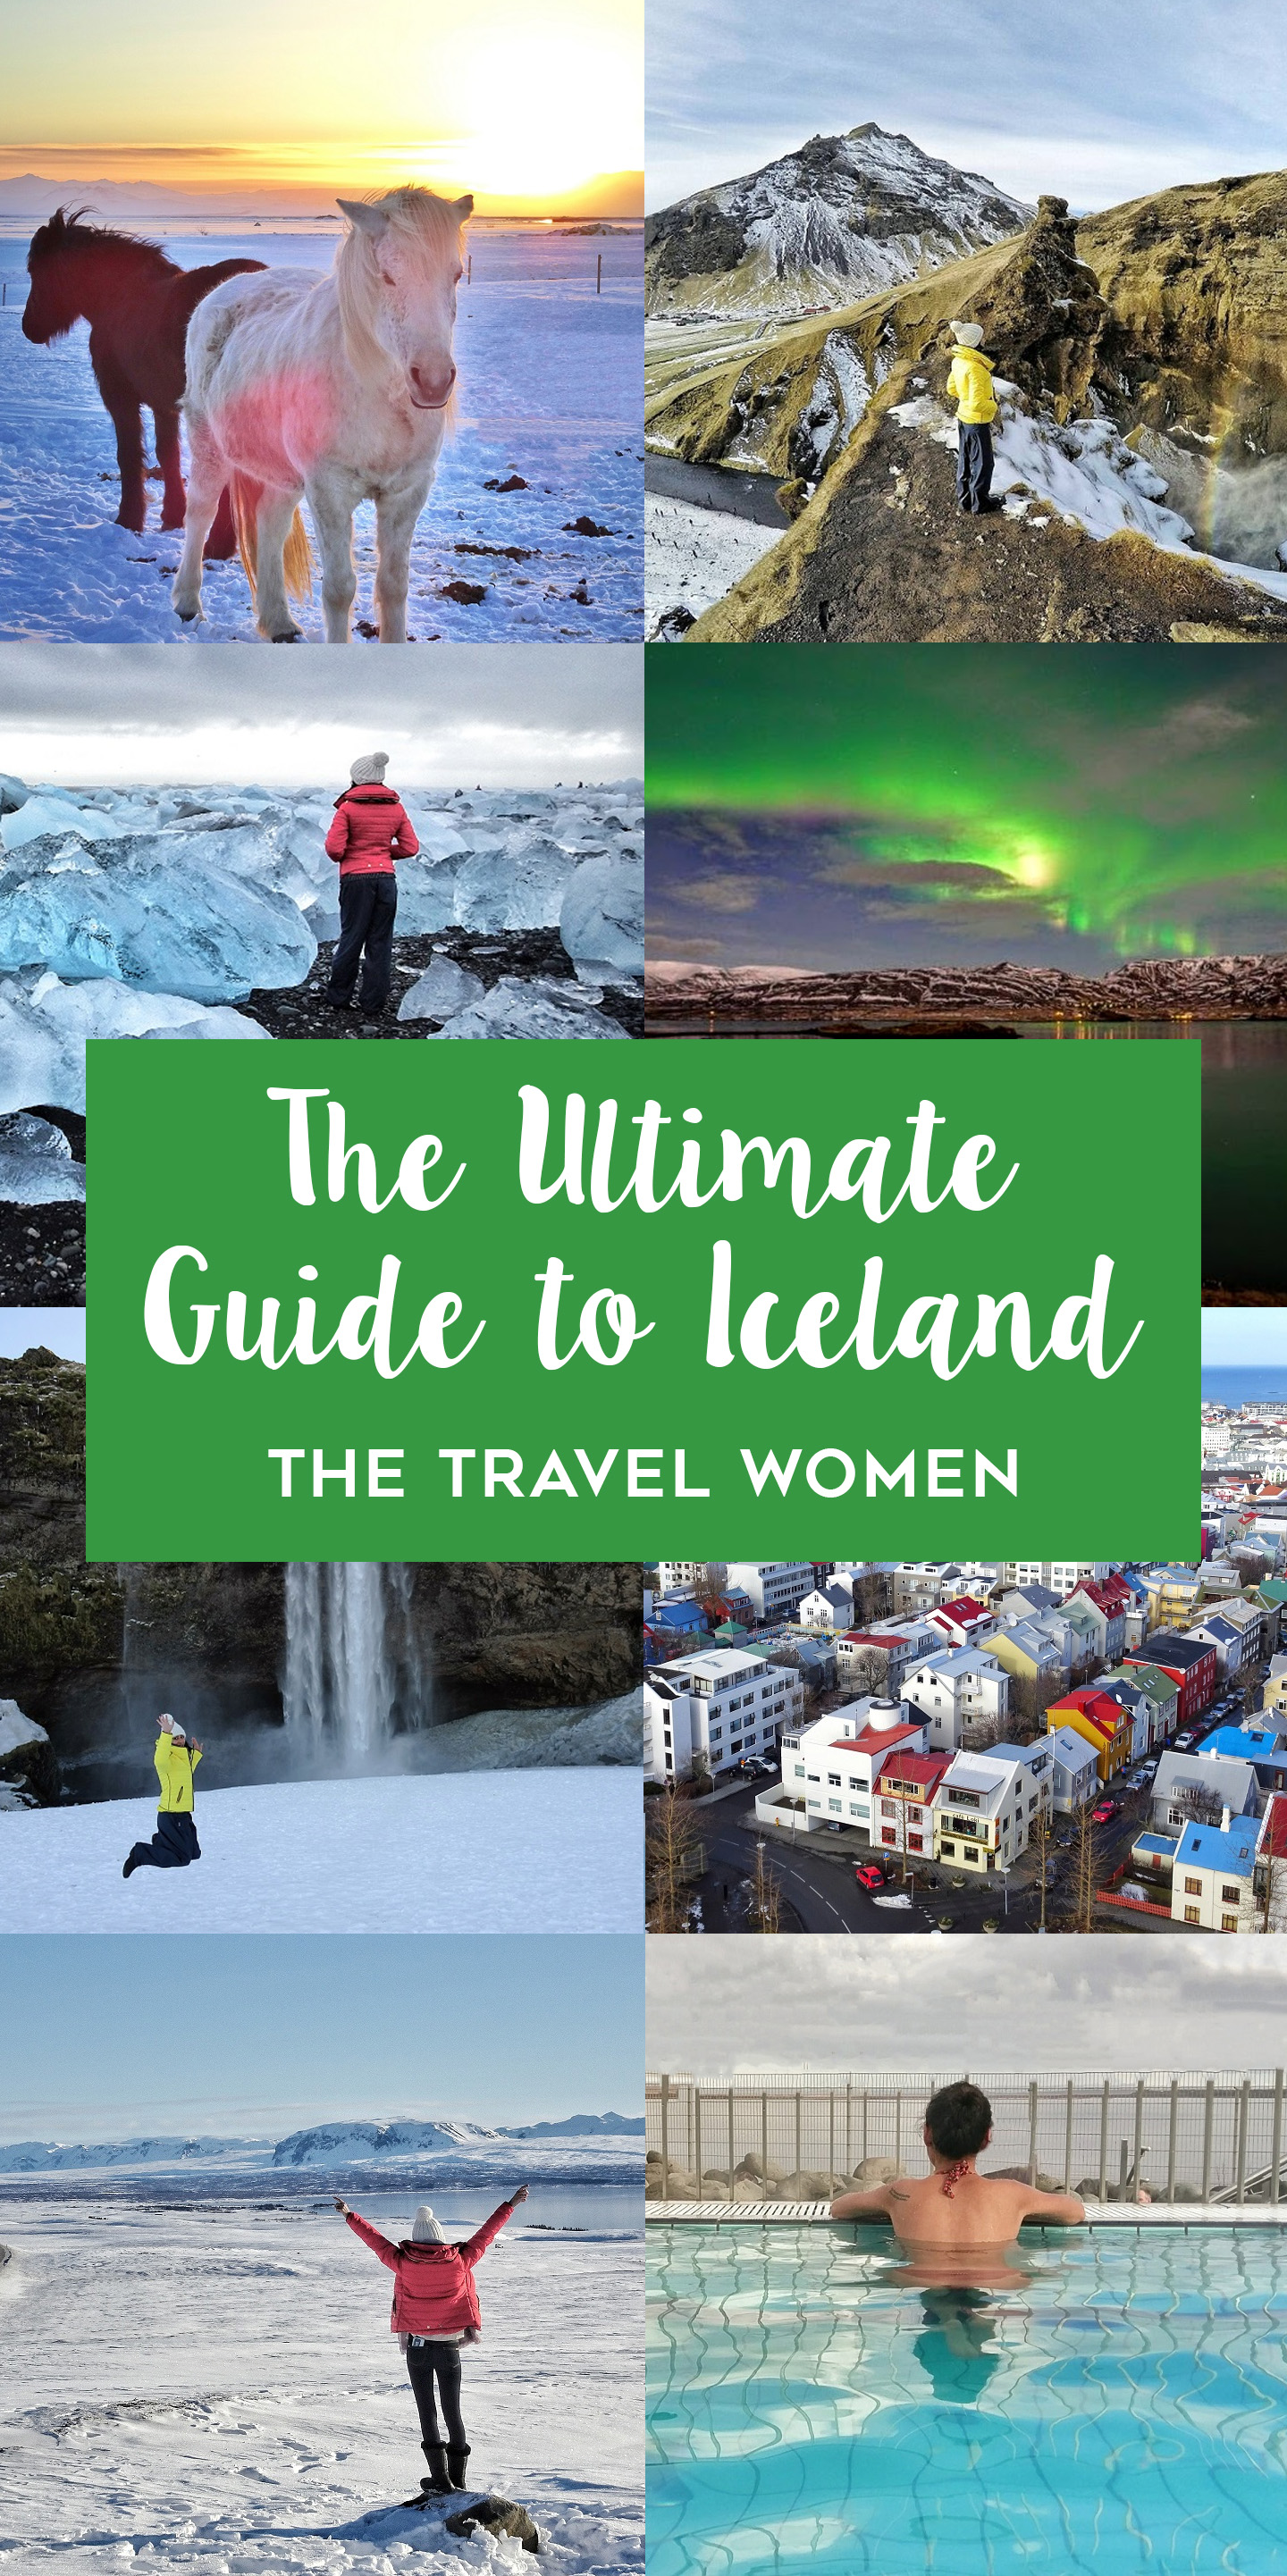 The Ultimate Guide to Iceland